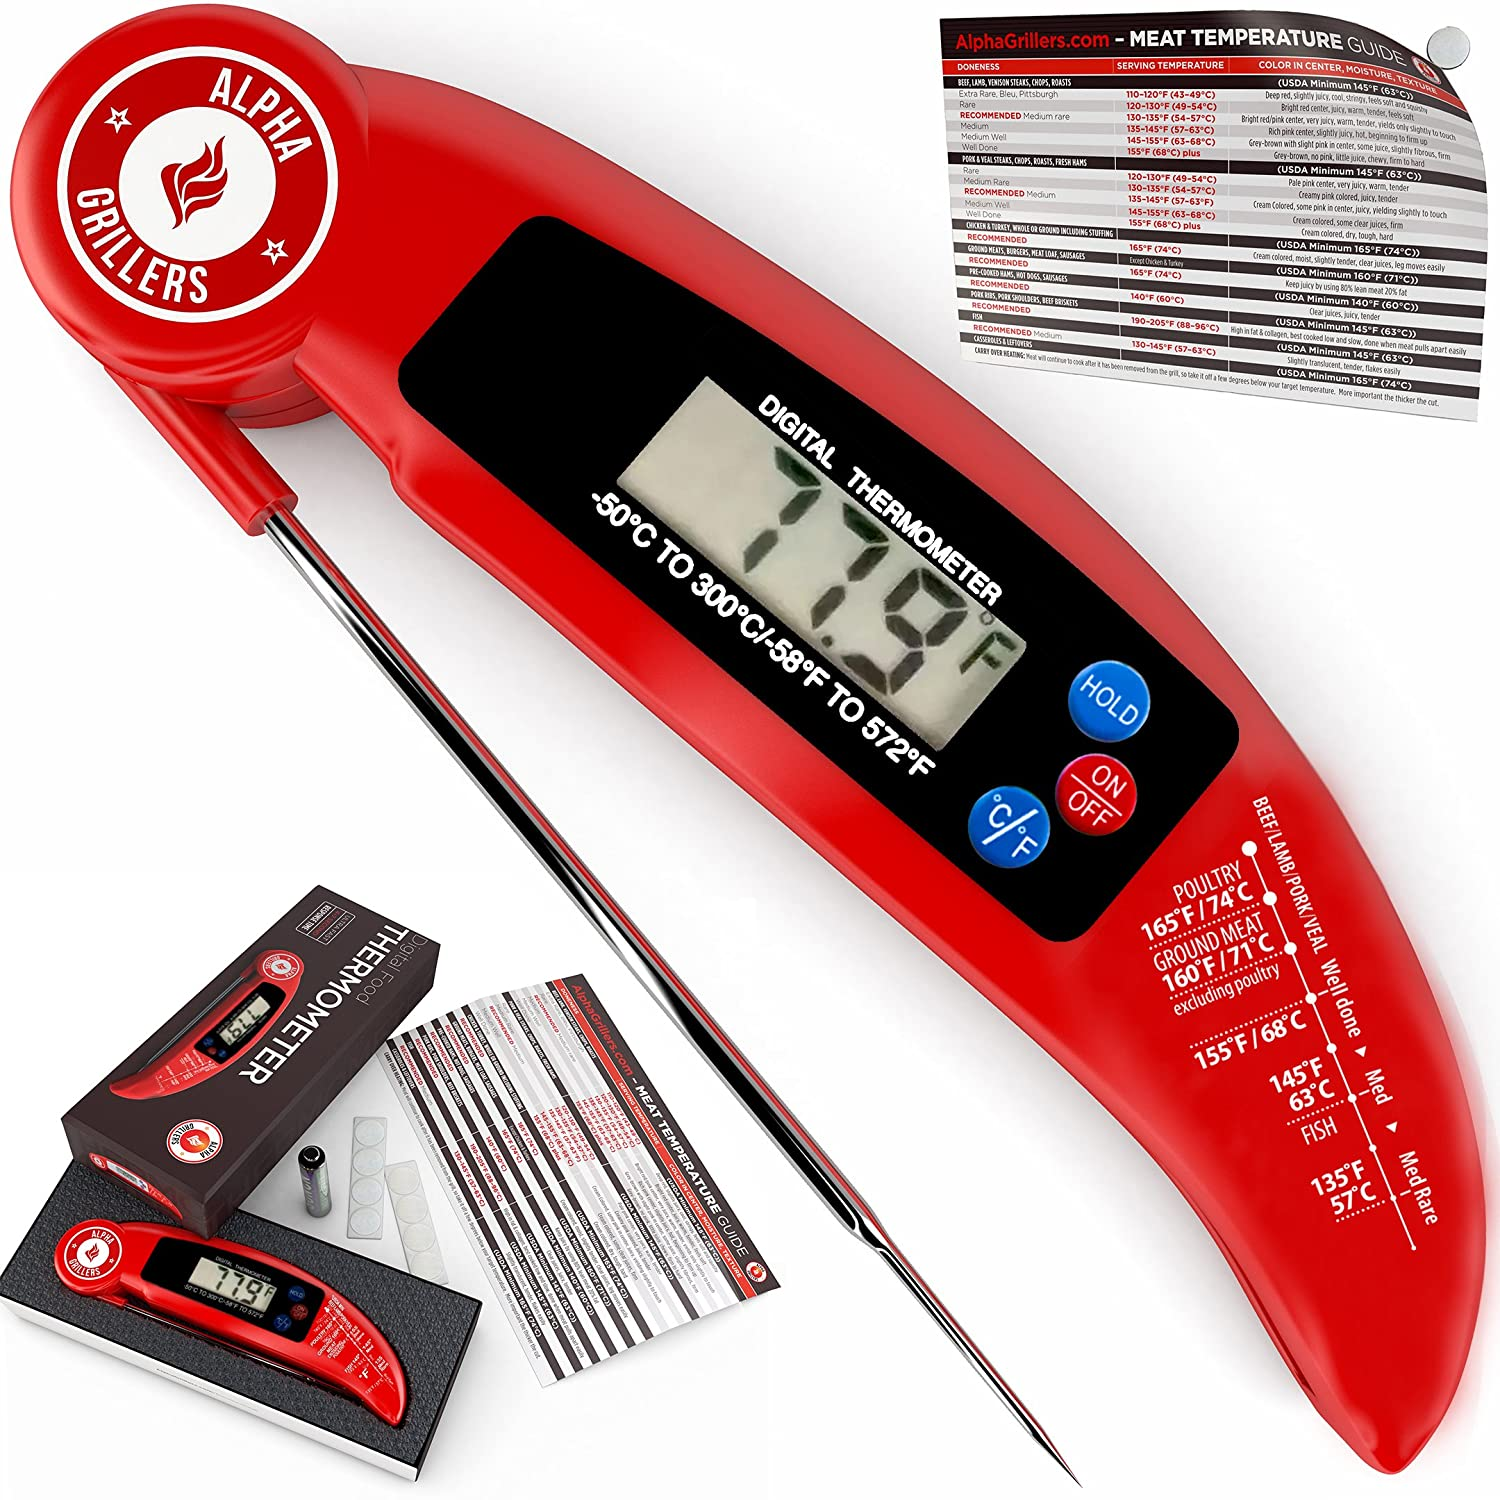 Alpha Grillers Ultra Fast Instant Read Digital Cooking Thermometer With BBQ Meat Internal Temperature Chart.